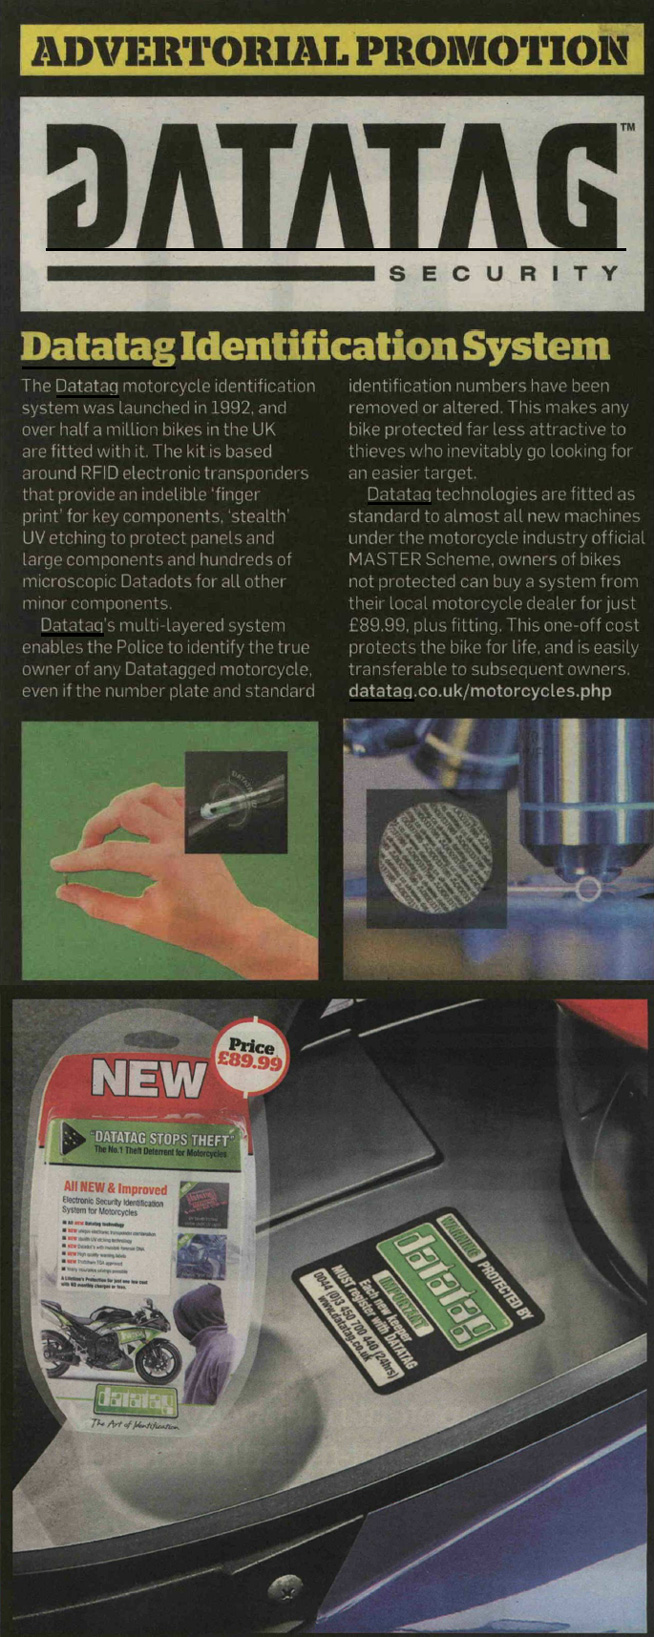 MCN NEWS ADVERTORIAL - DATATAG MOTORCYCLE SYSTEM